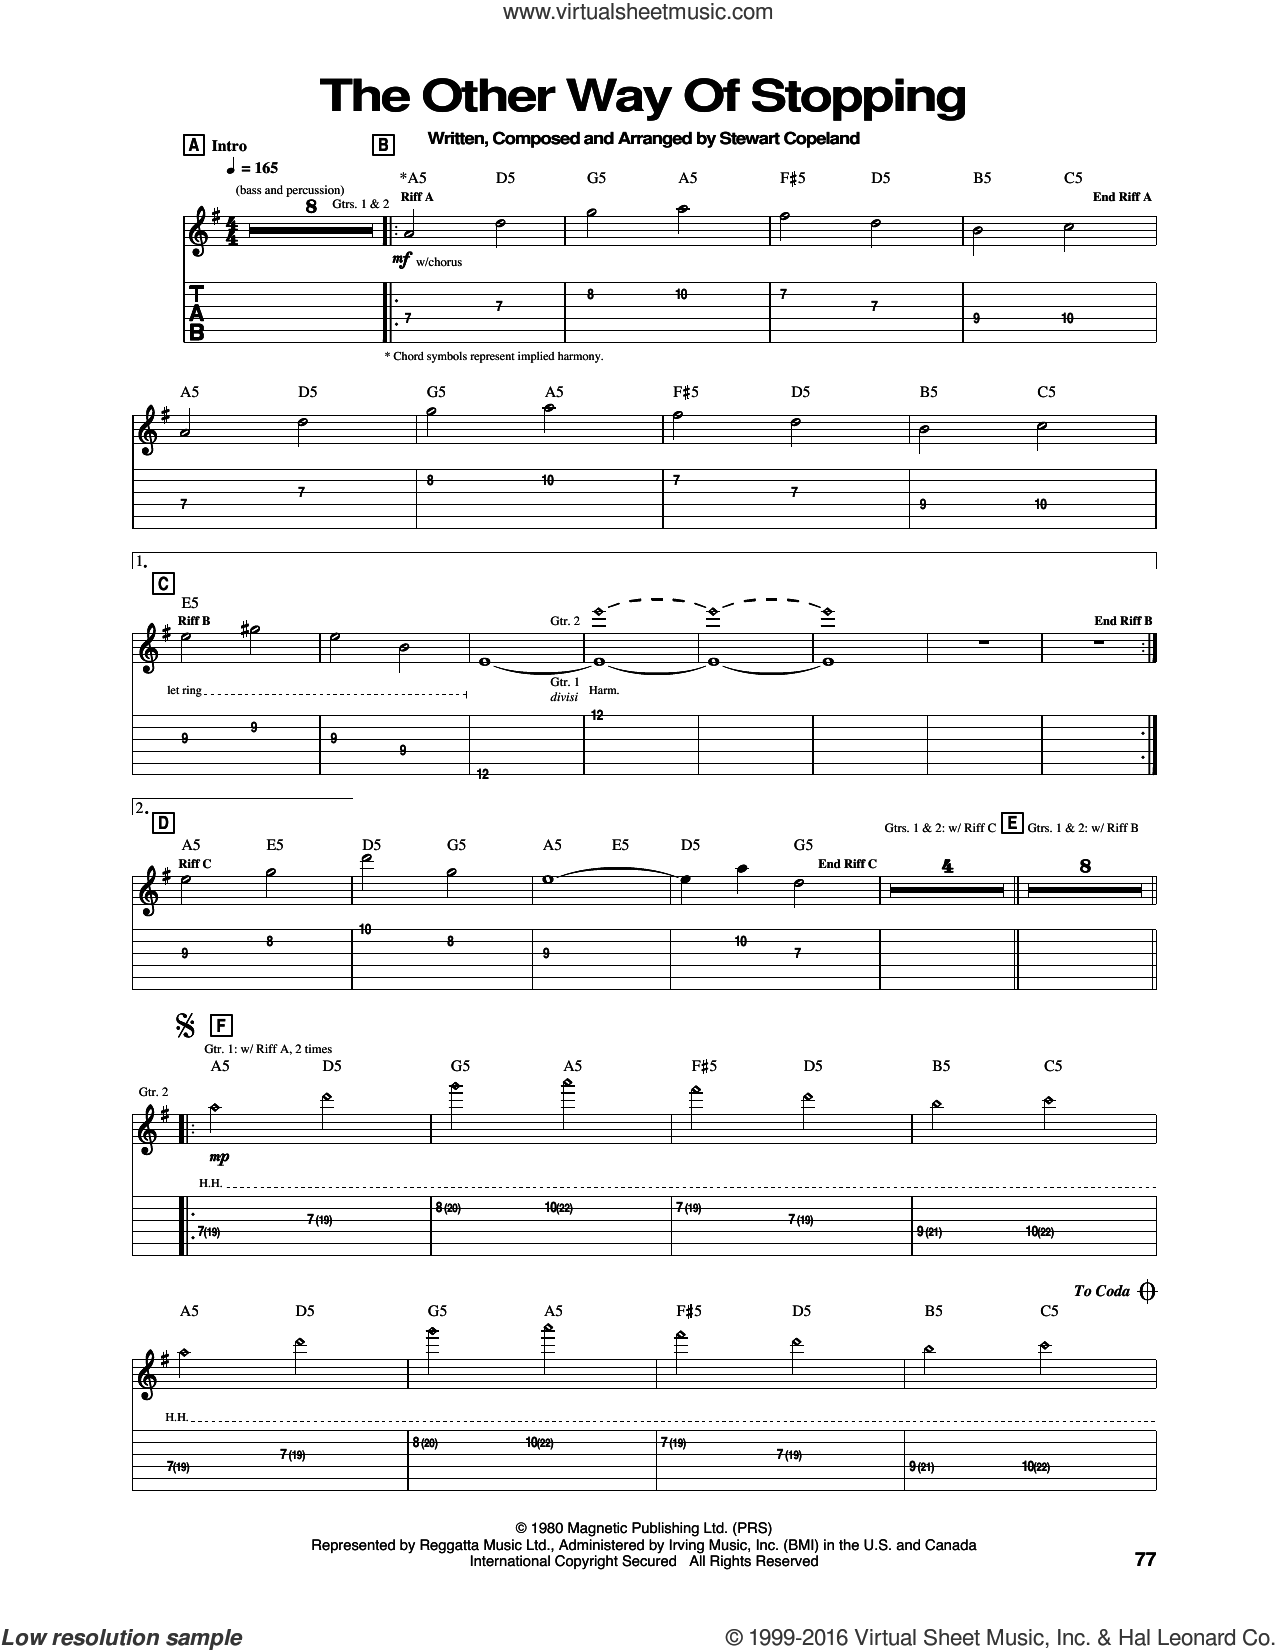 The Other Way Of Stopping sheet music for guitar (tablature) by The Police and Stewart Copeland, intermediate